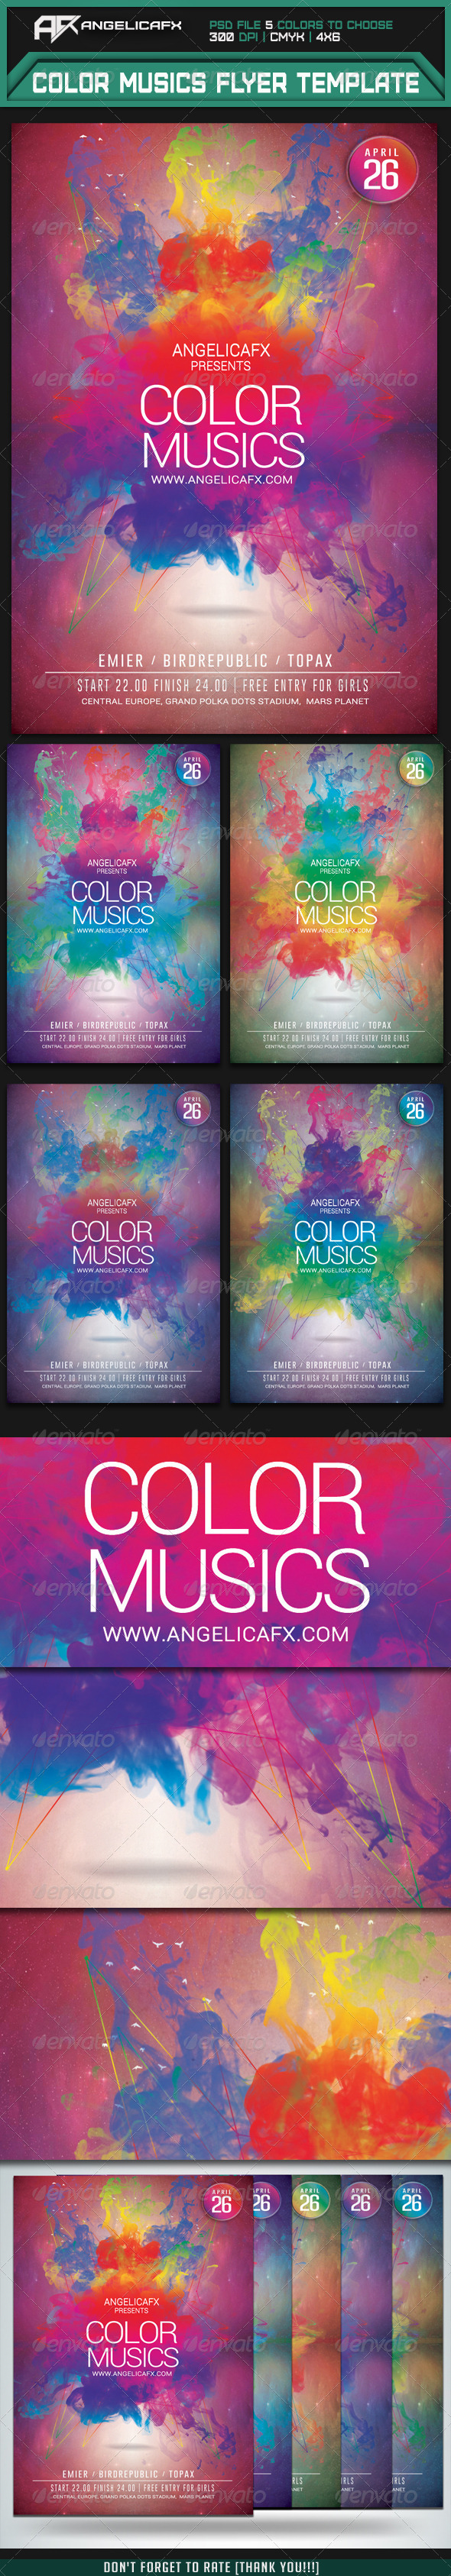 Color Music Flyer Template